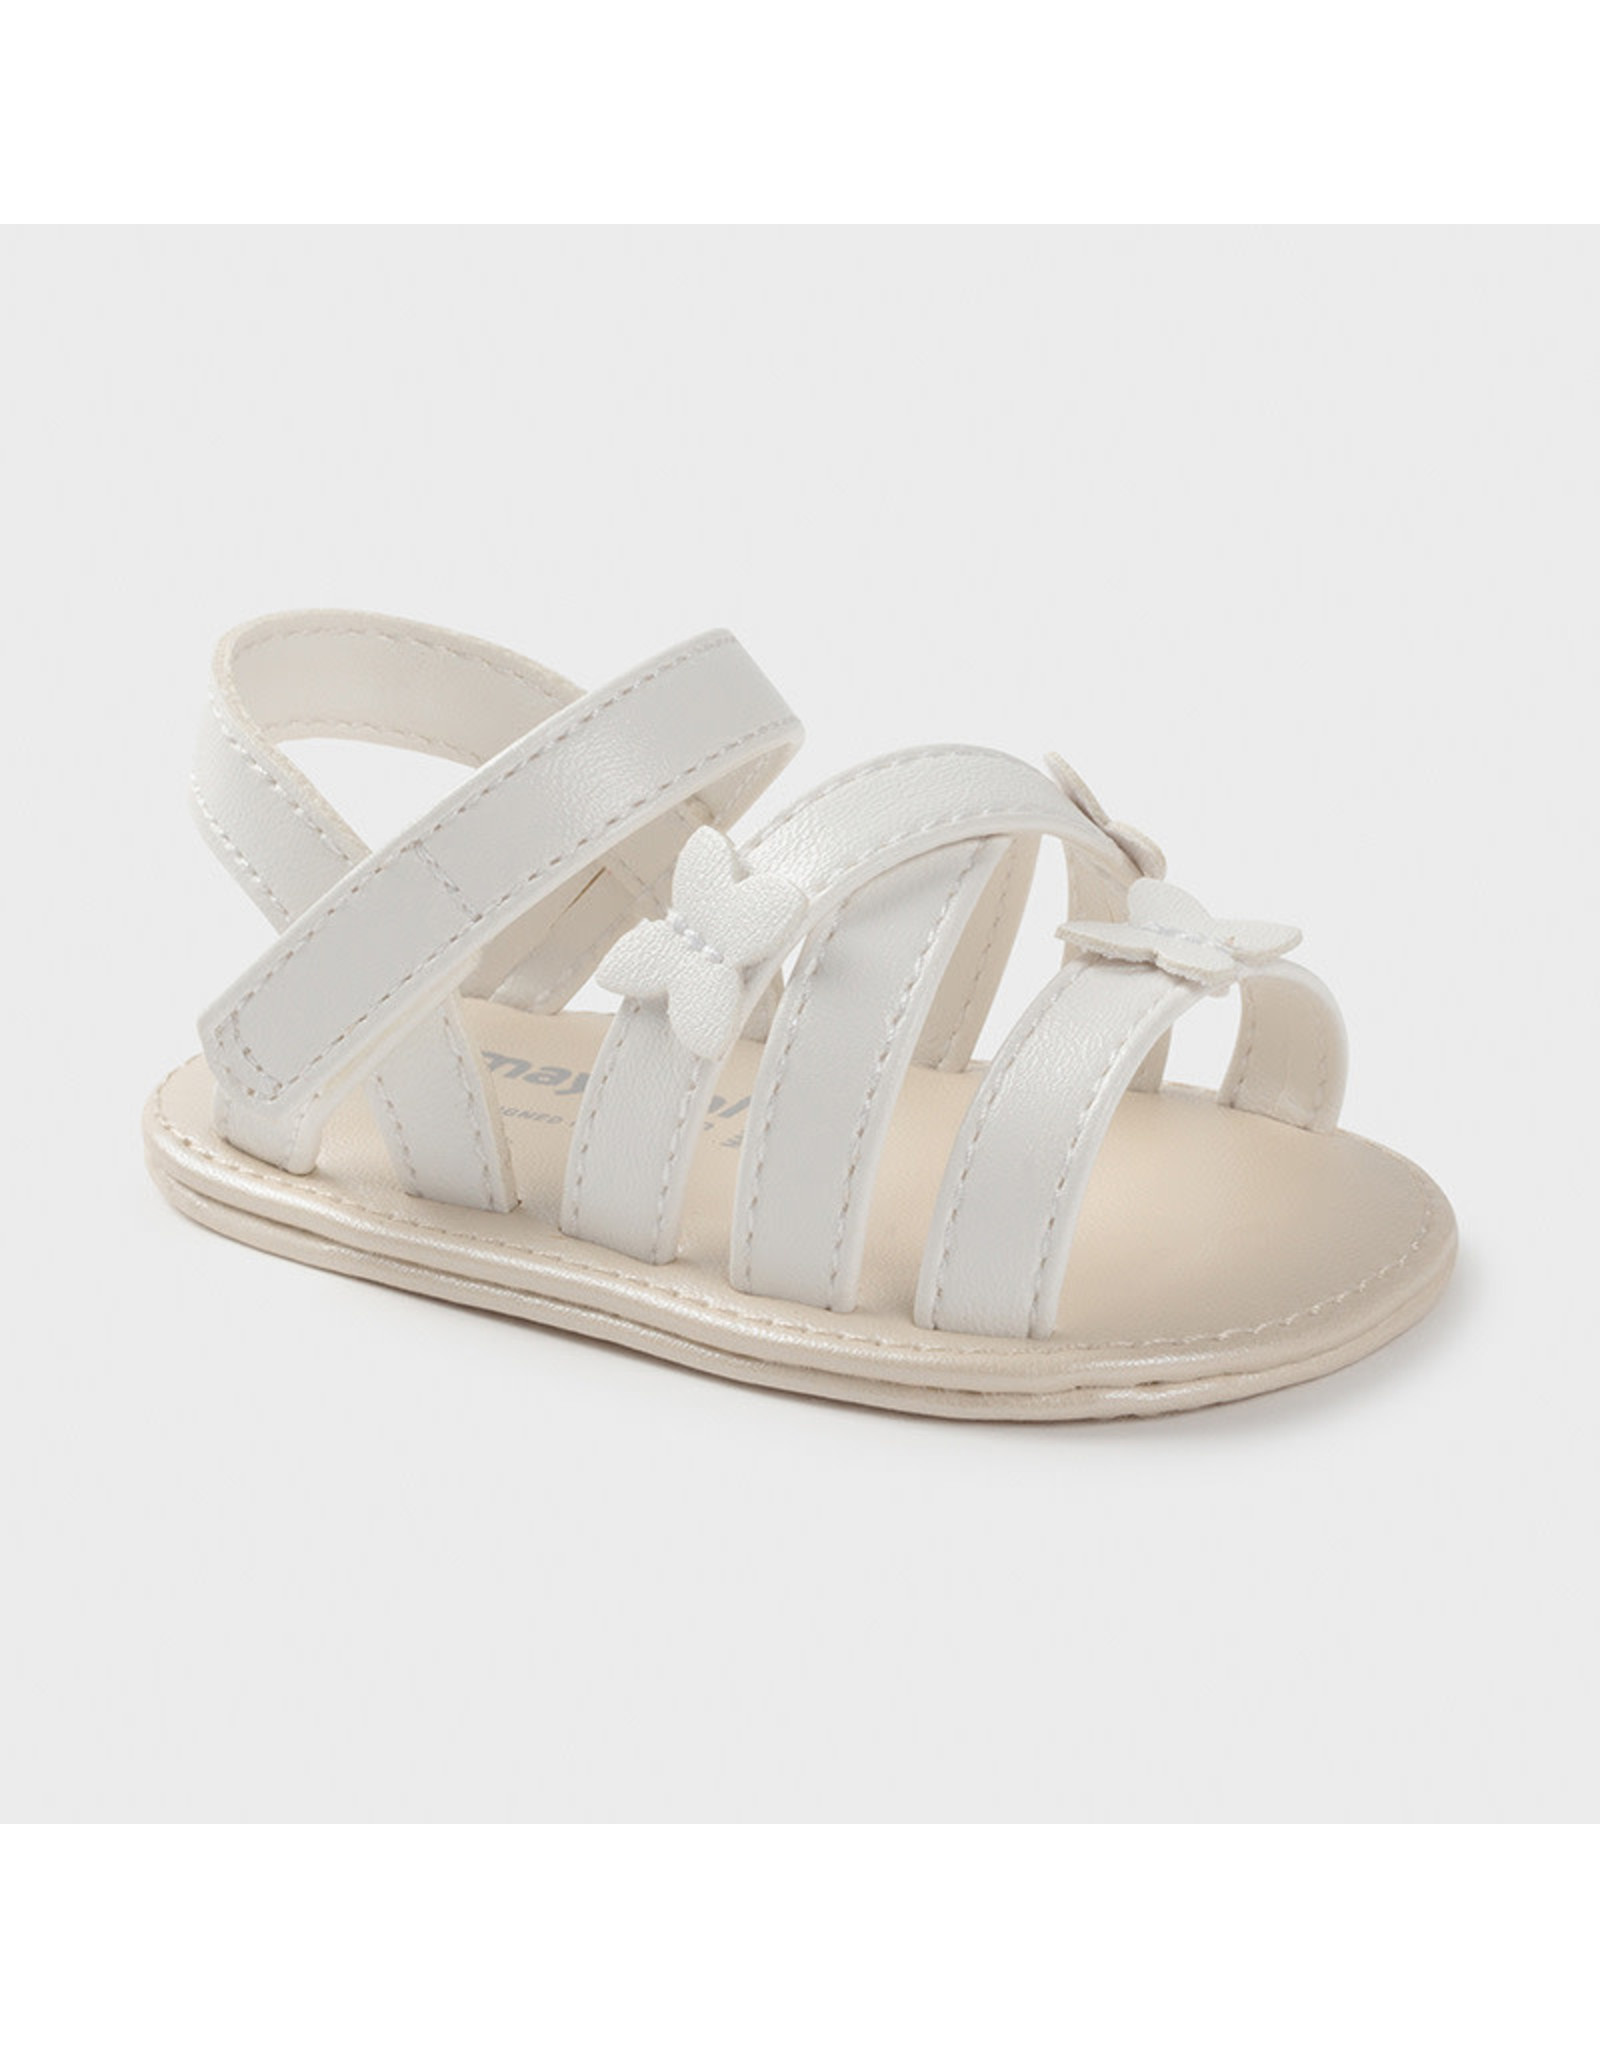 Mayoral butterfly sandals